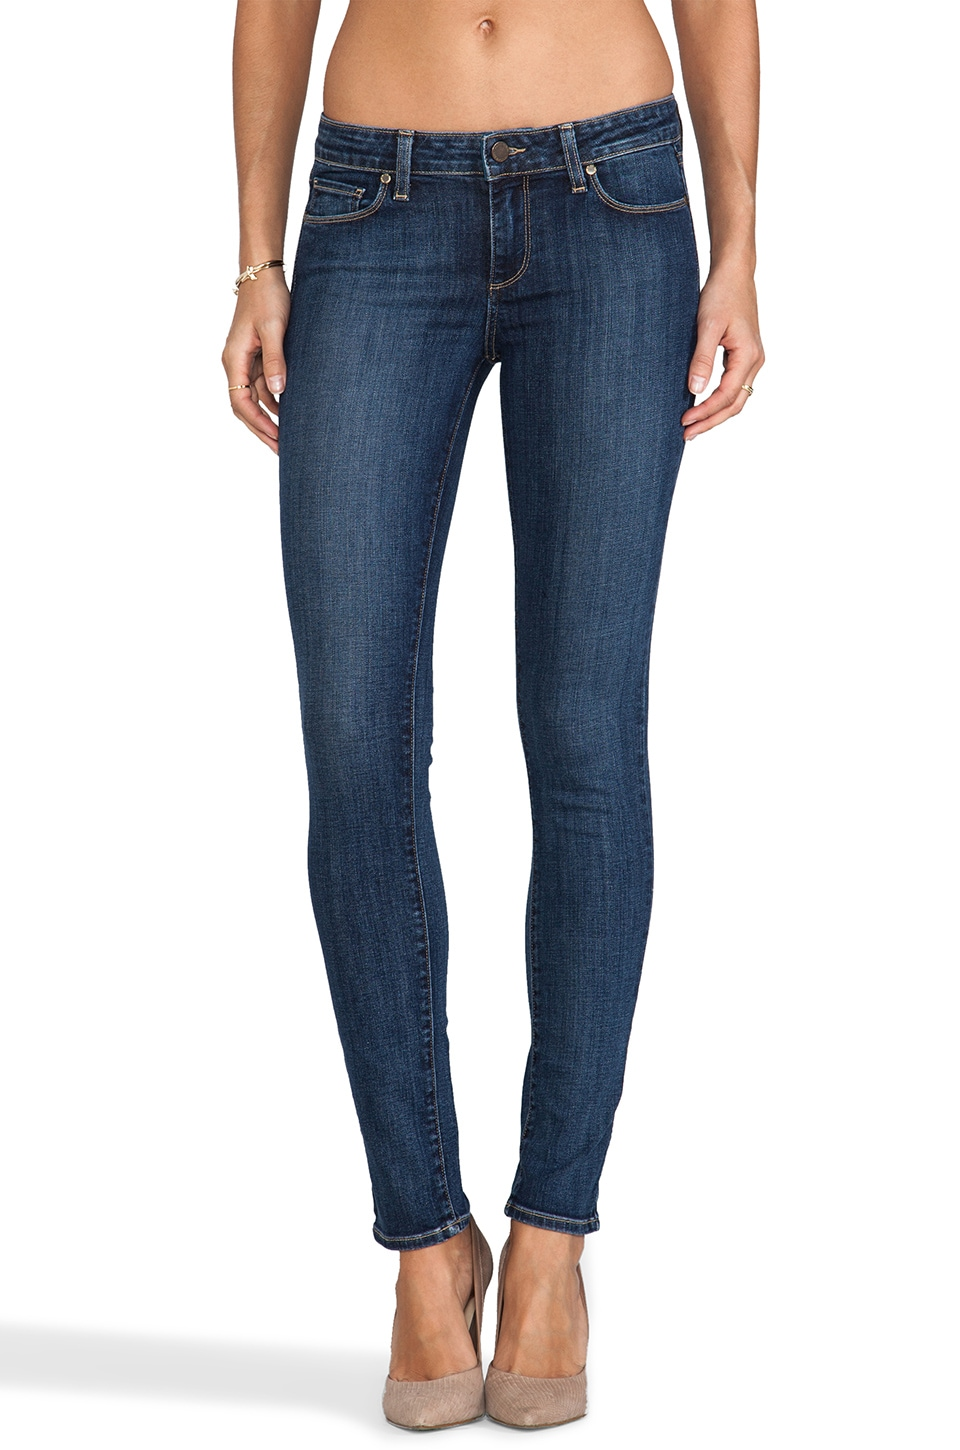 Paige Denim Skyline Skinny in Descend